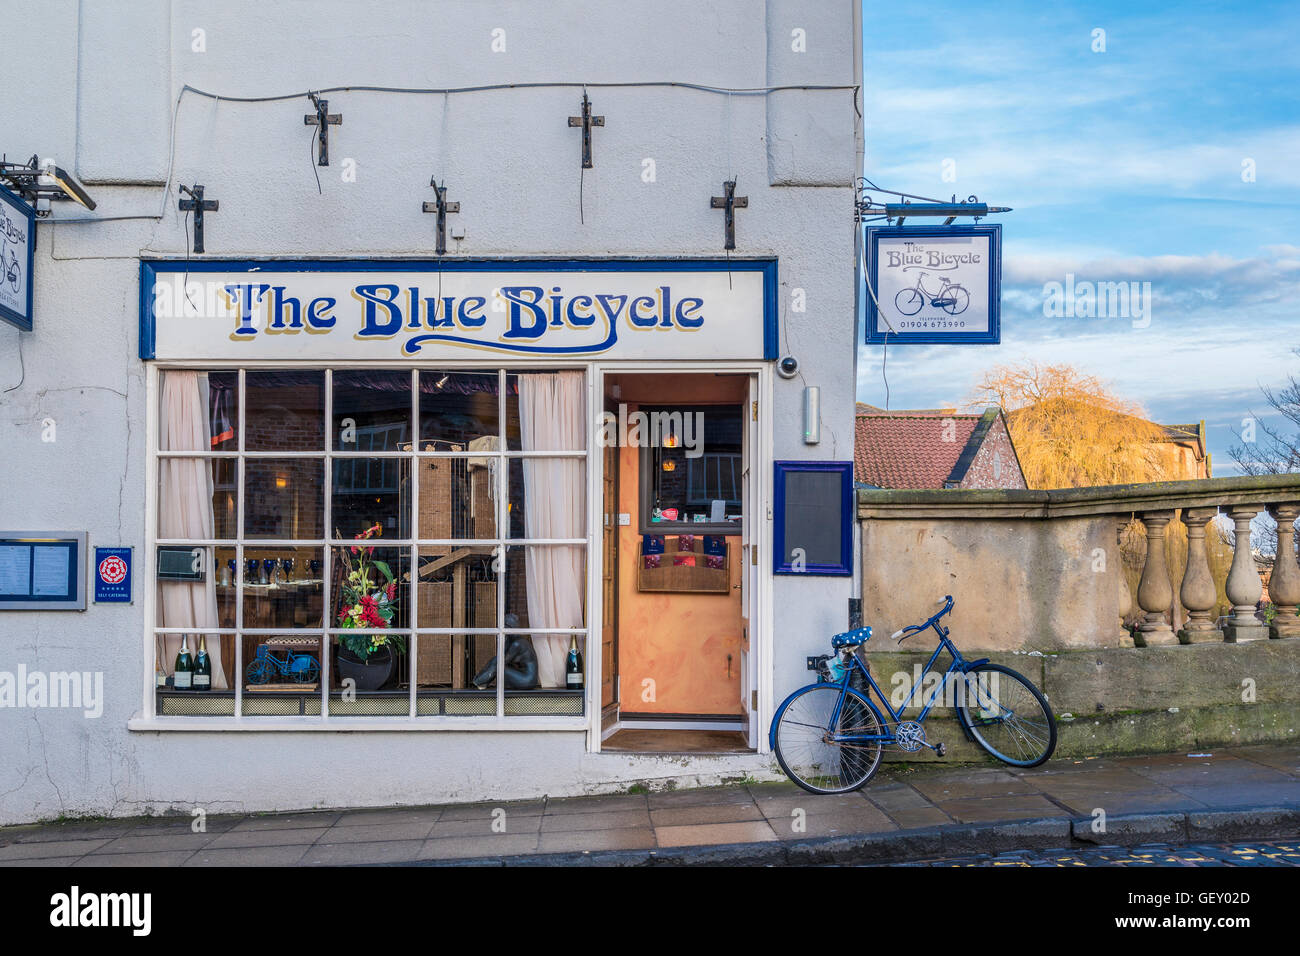 The Blue Bicycle Restaurant on Fossgate in York. - Stock Image